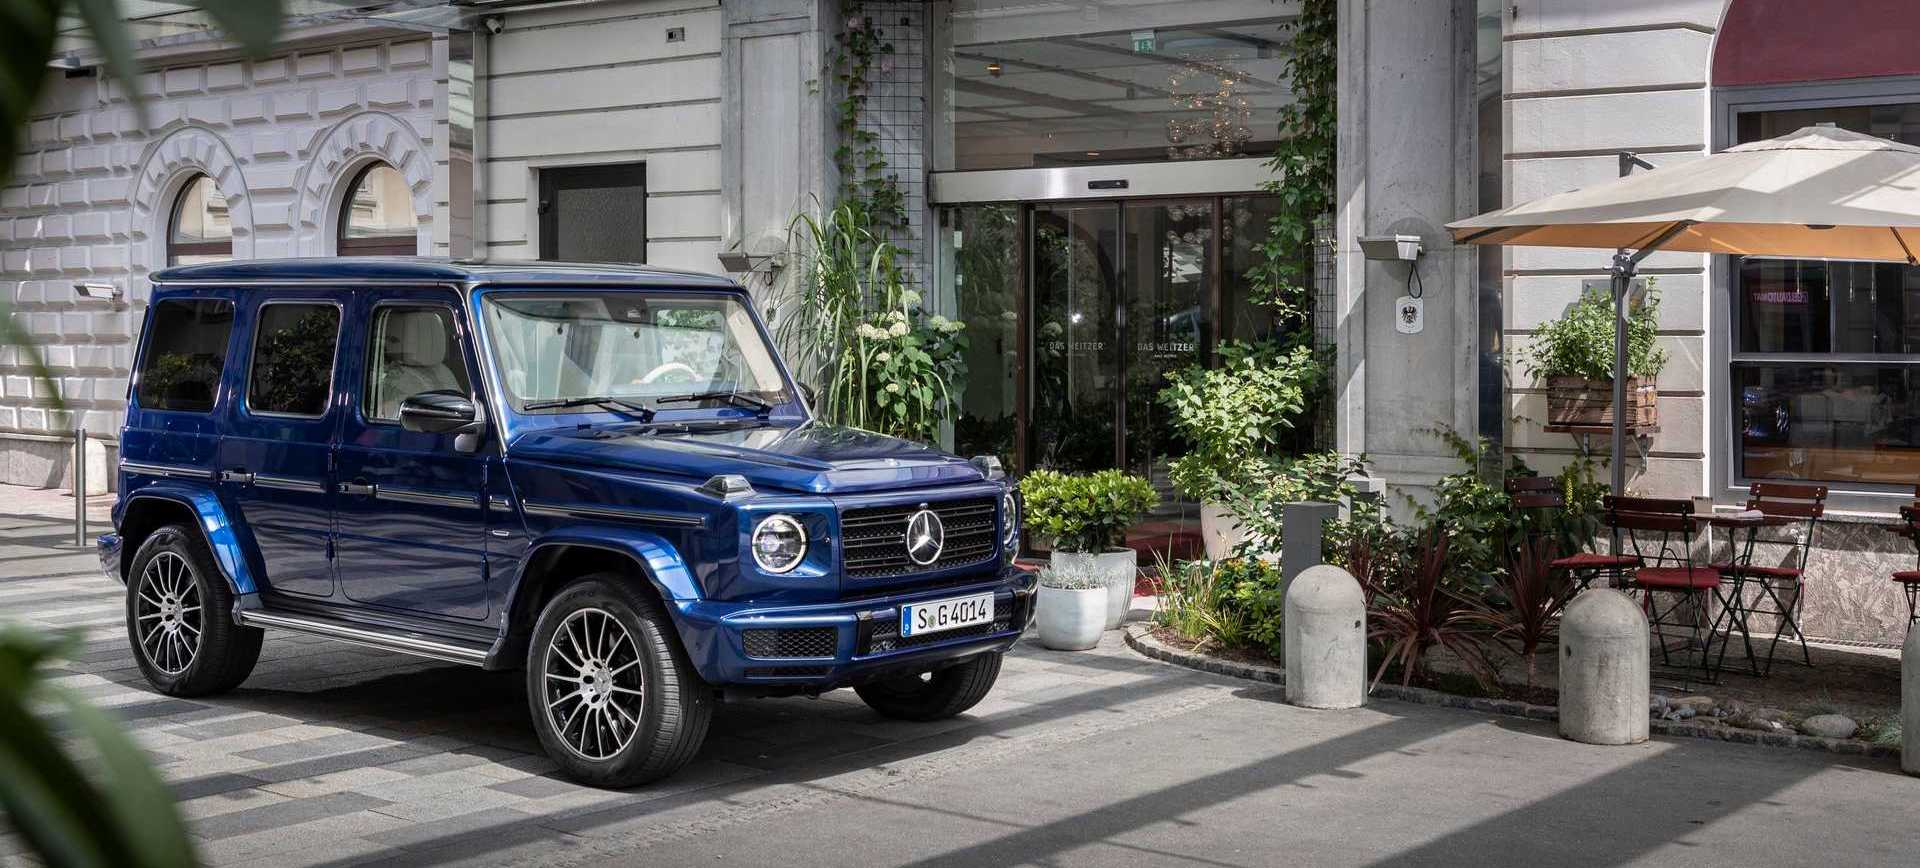 Mercedes-AMG G63 Celebrates 20th Anniversary With Cool Packages